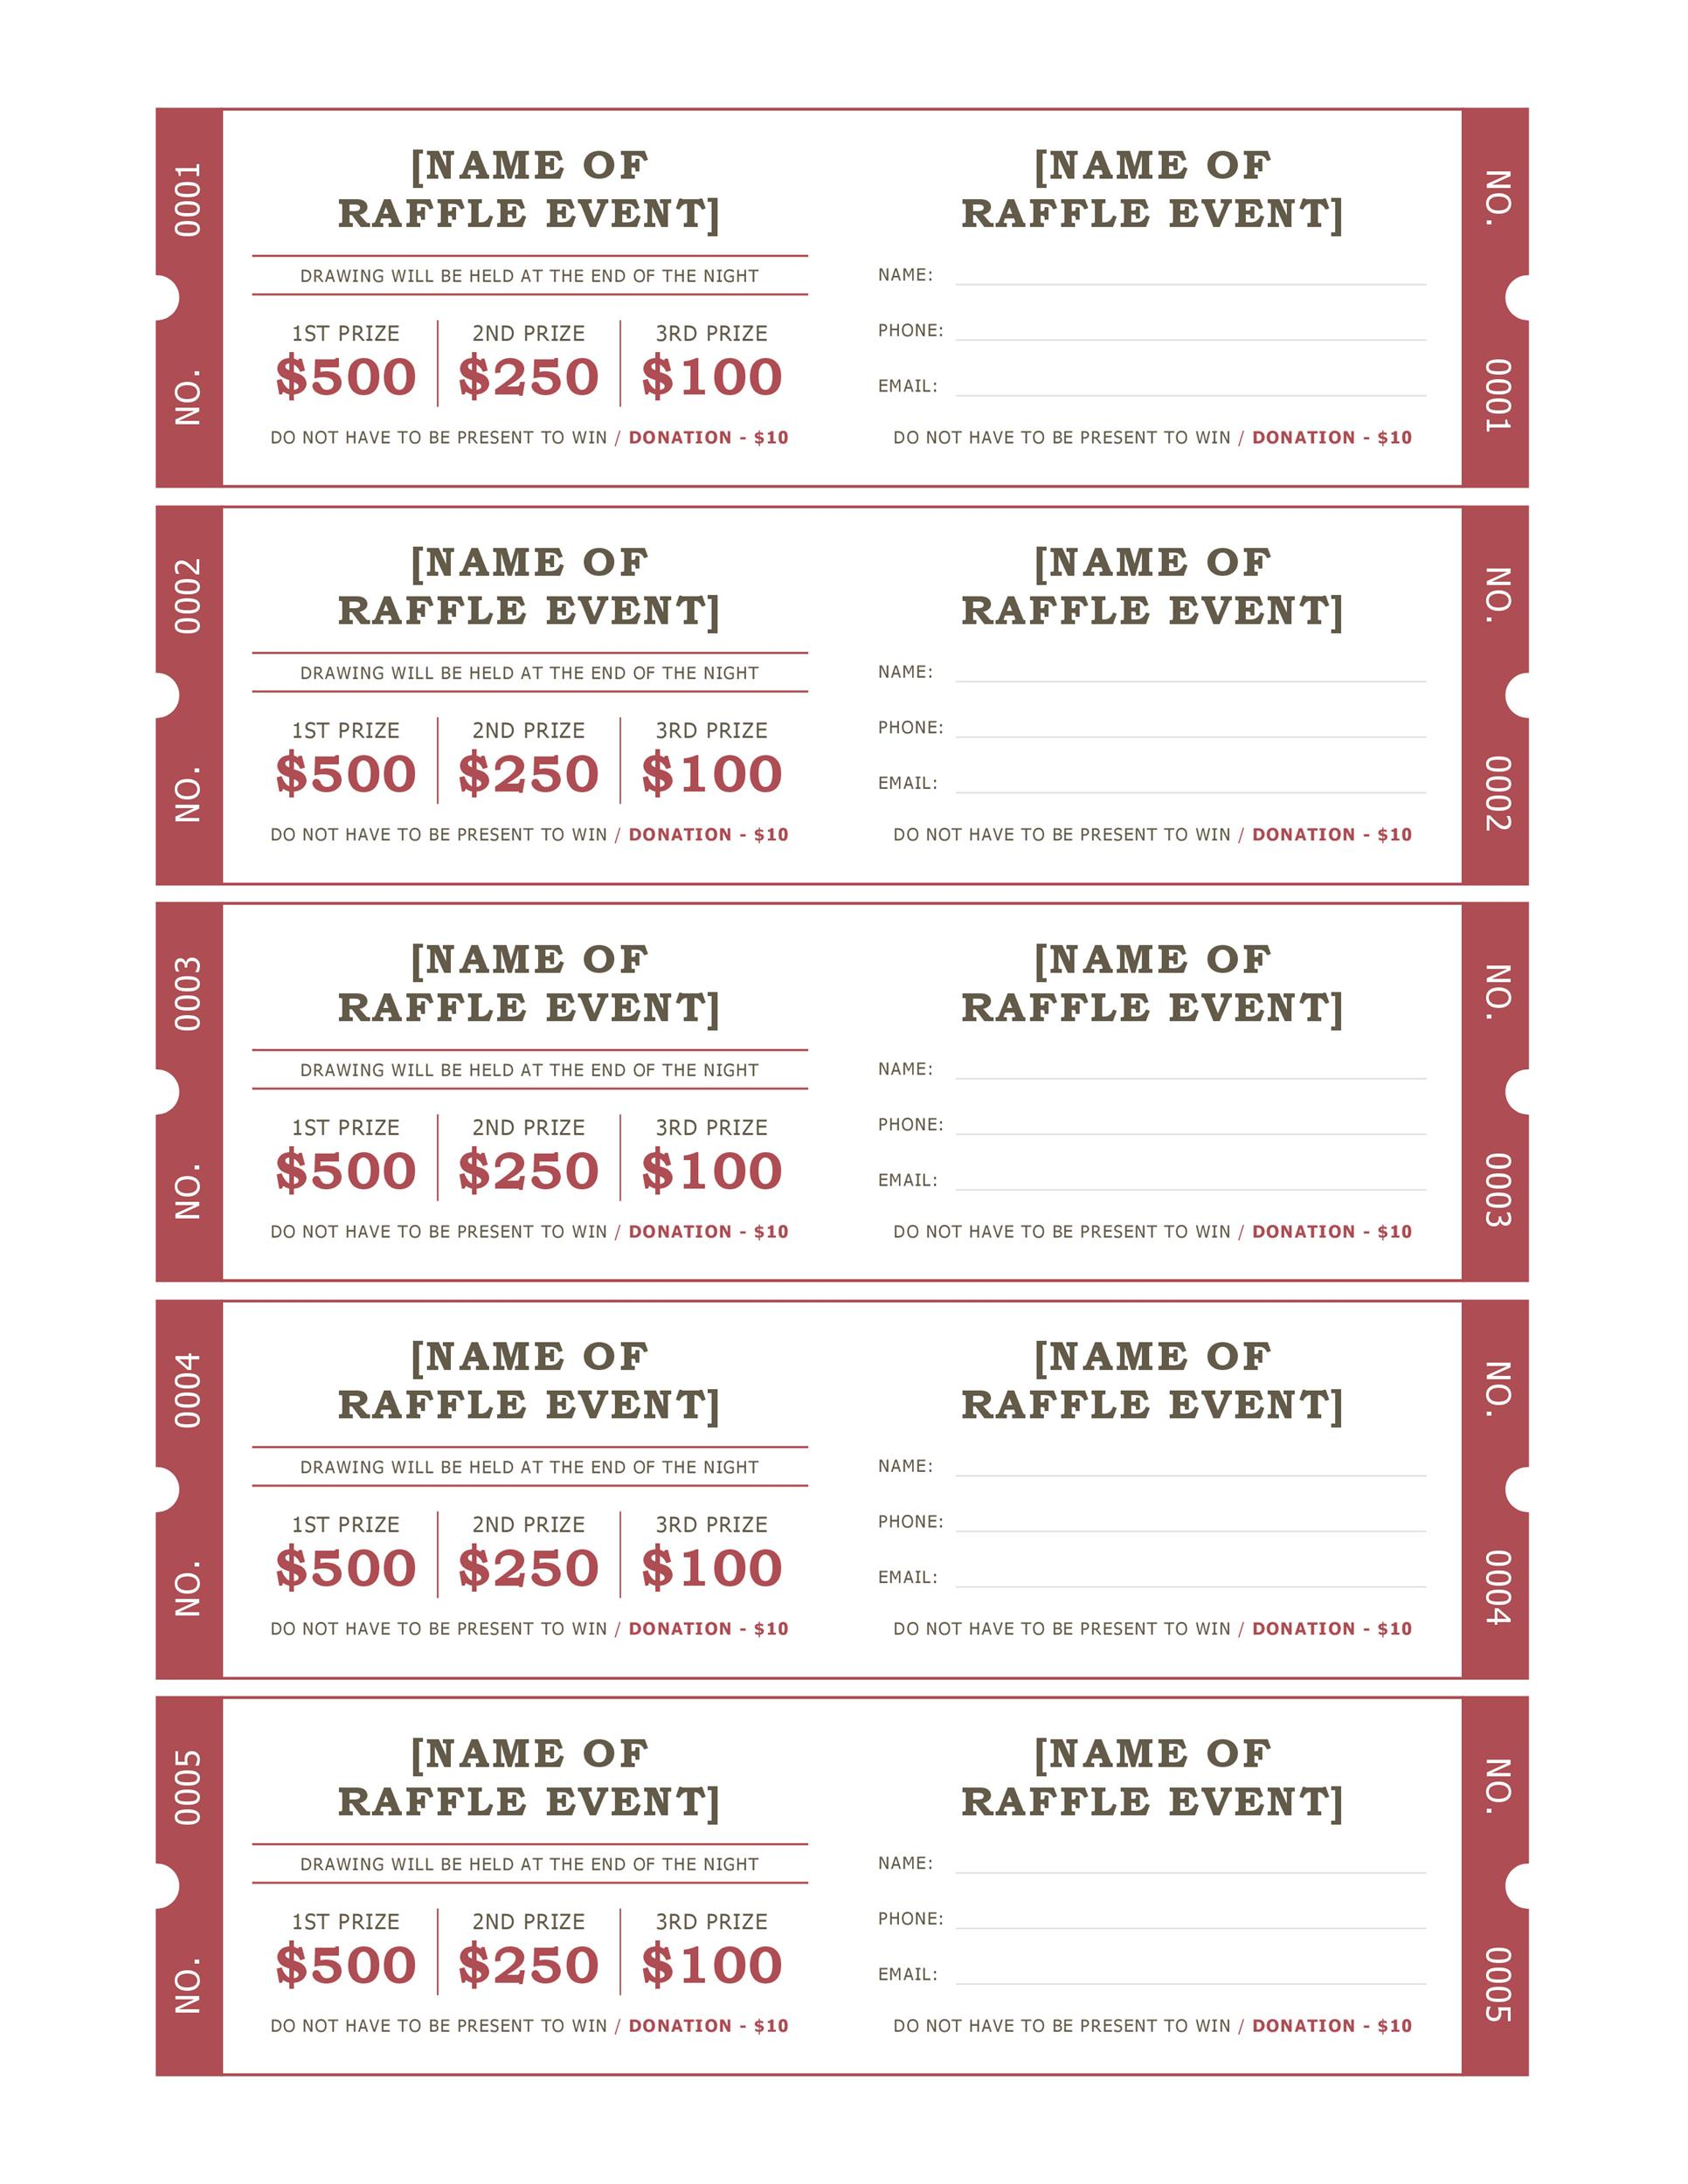 40 Free Editable Raffle Movie Ticket Templates – Free Event Ticket Maker